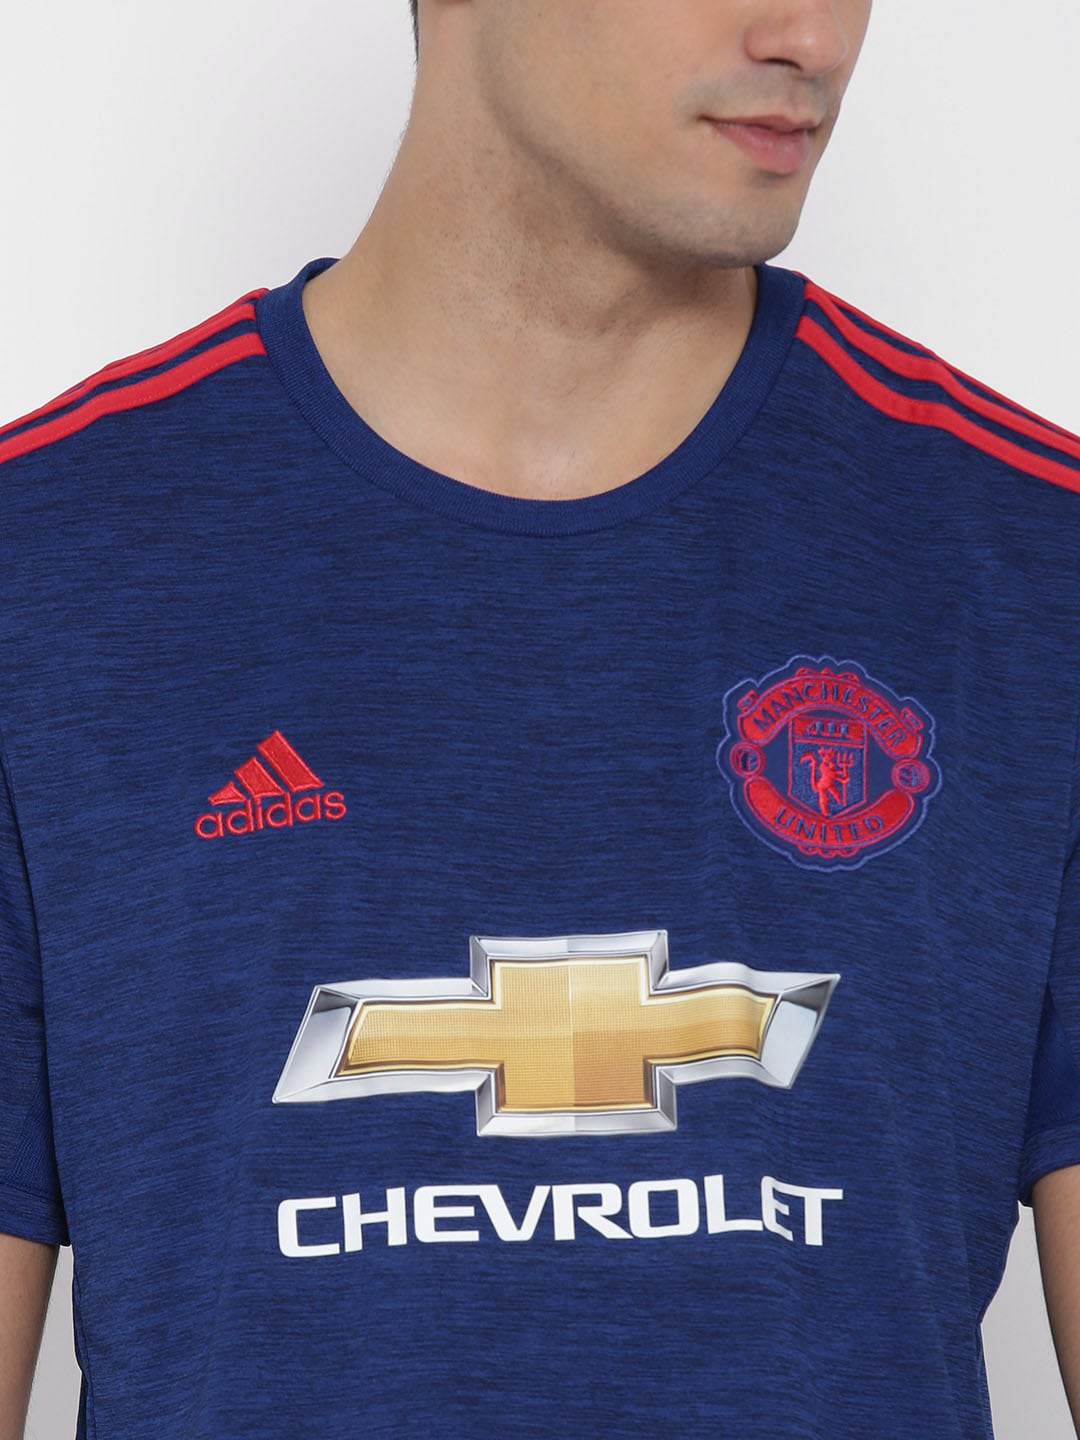 reputable site d0634 d9038 manchester united jersey buy online